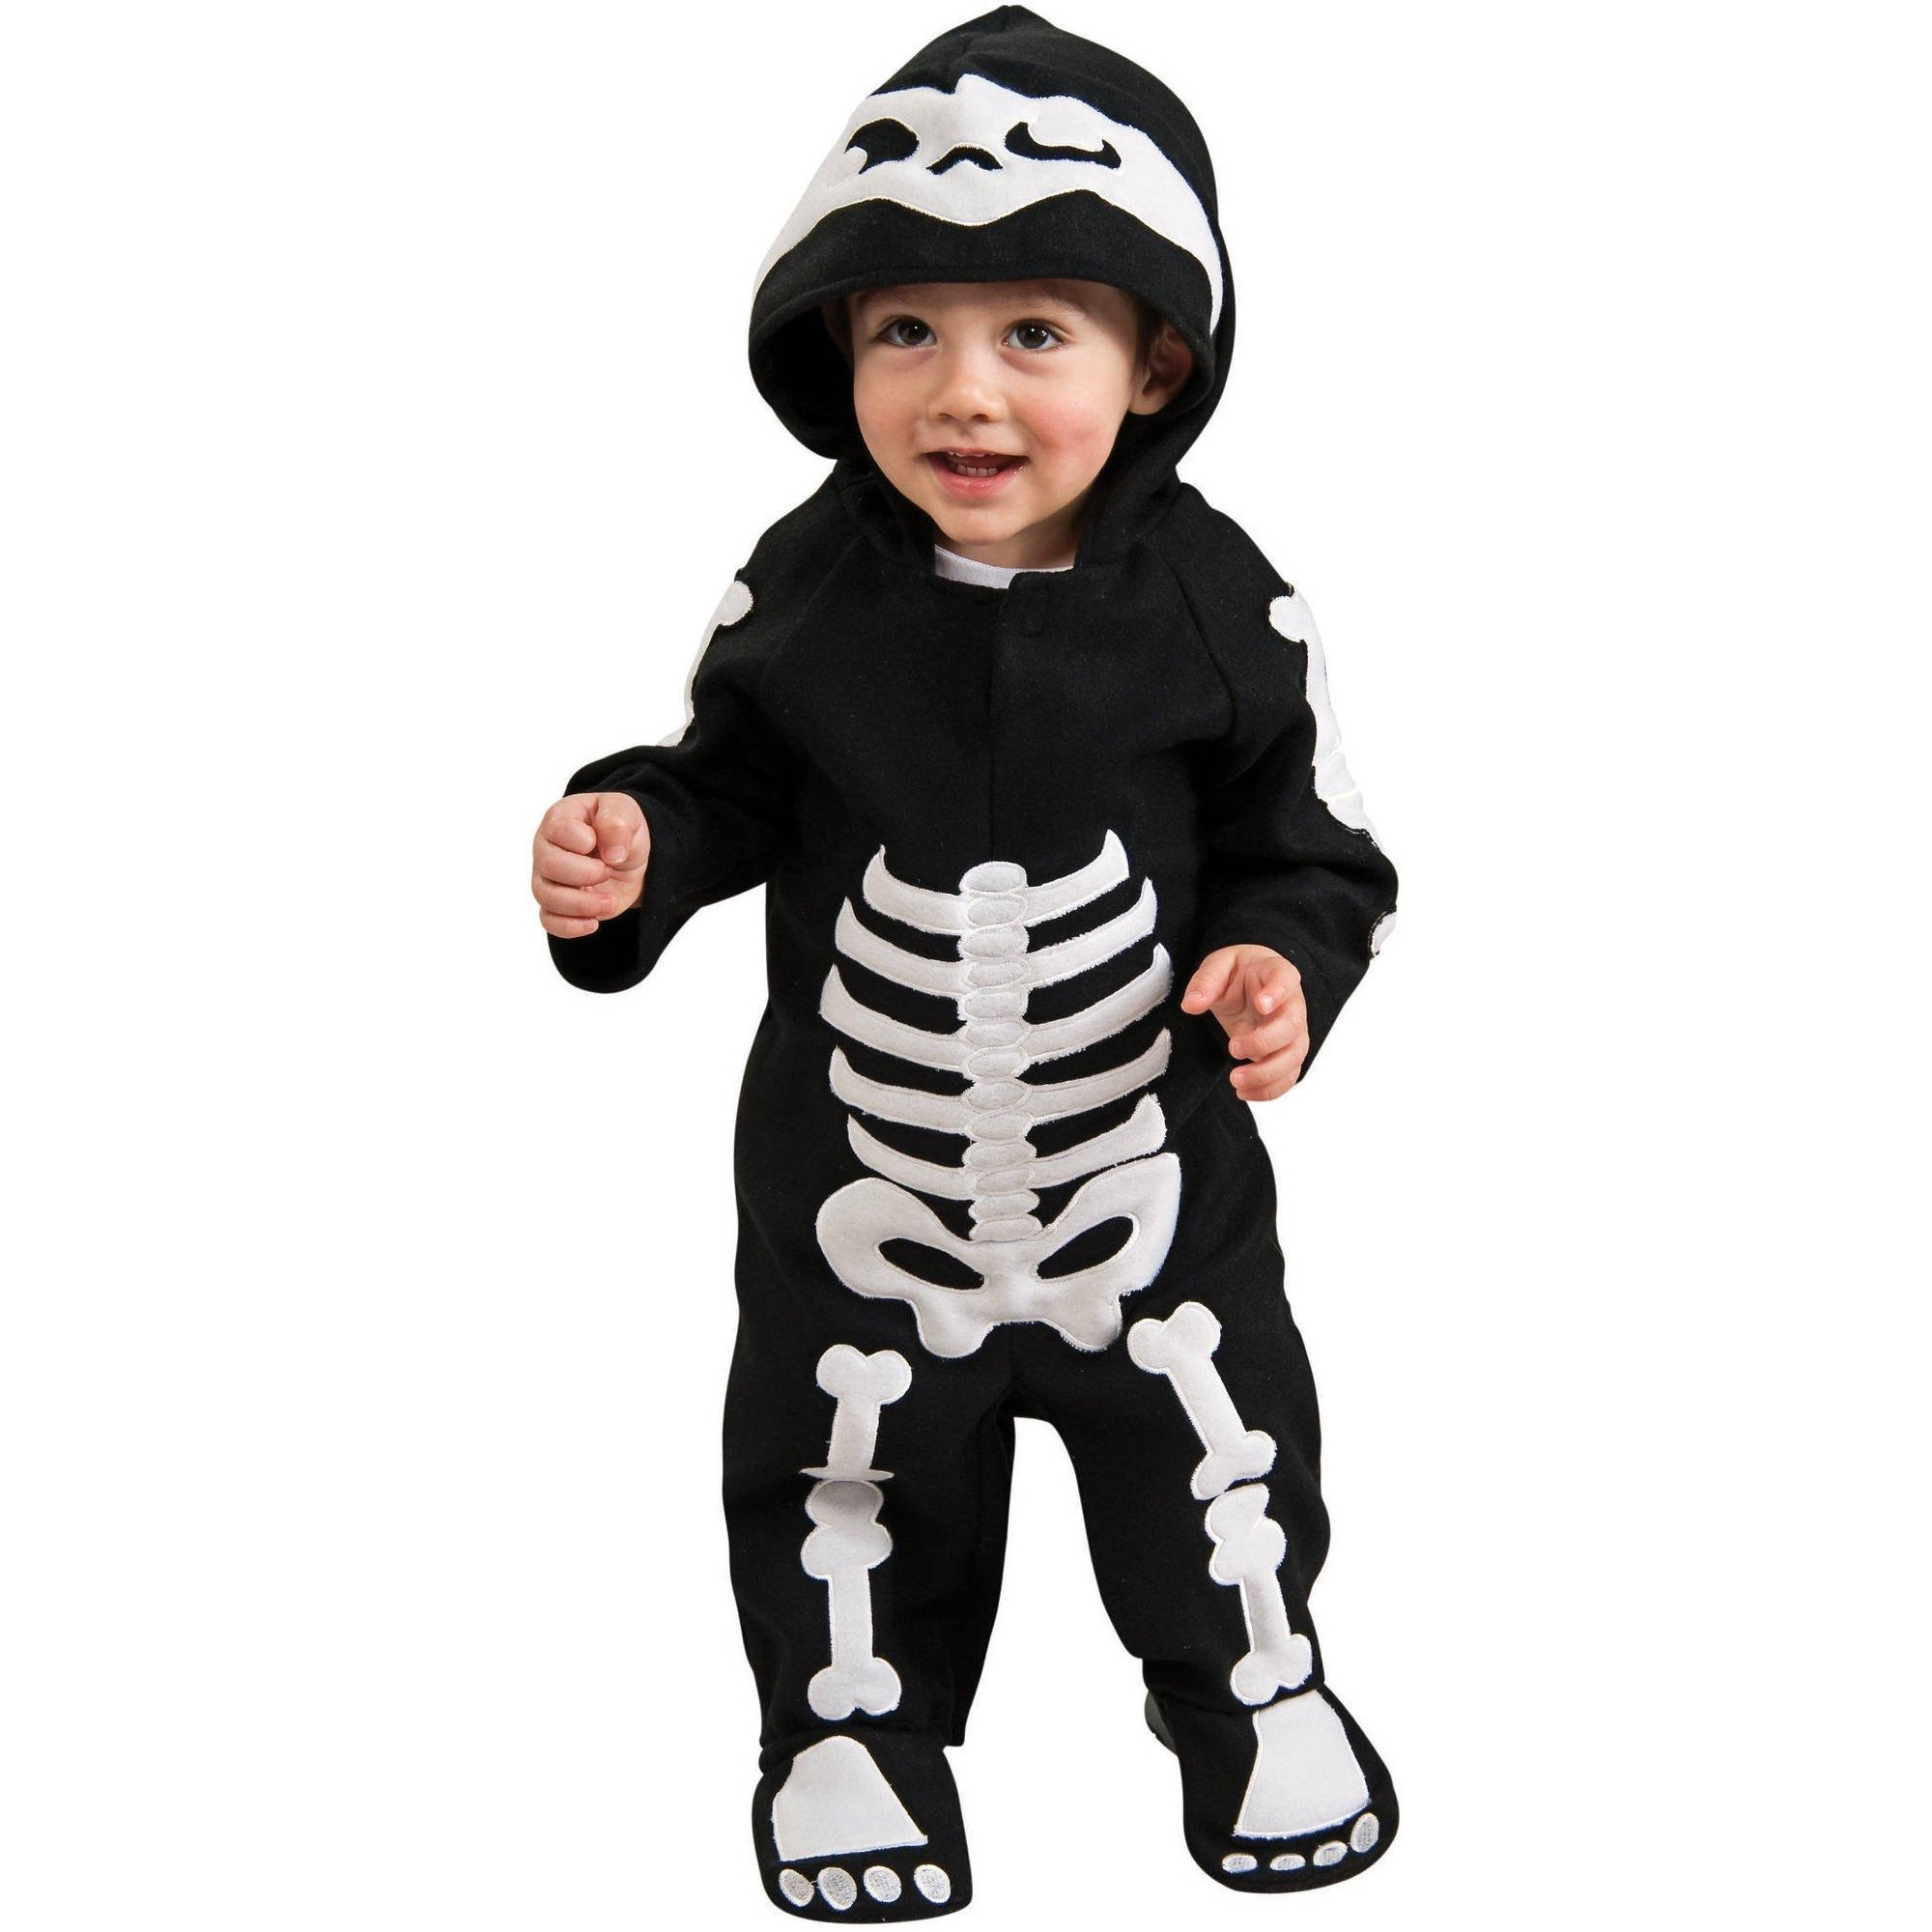 Baby Skeleton Infant Halloween Costume 6-12 Months  sc 1 st  Walmart & Skeletons Costumes